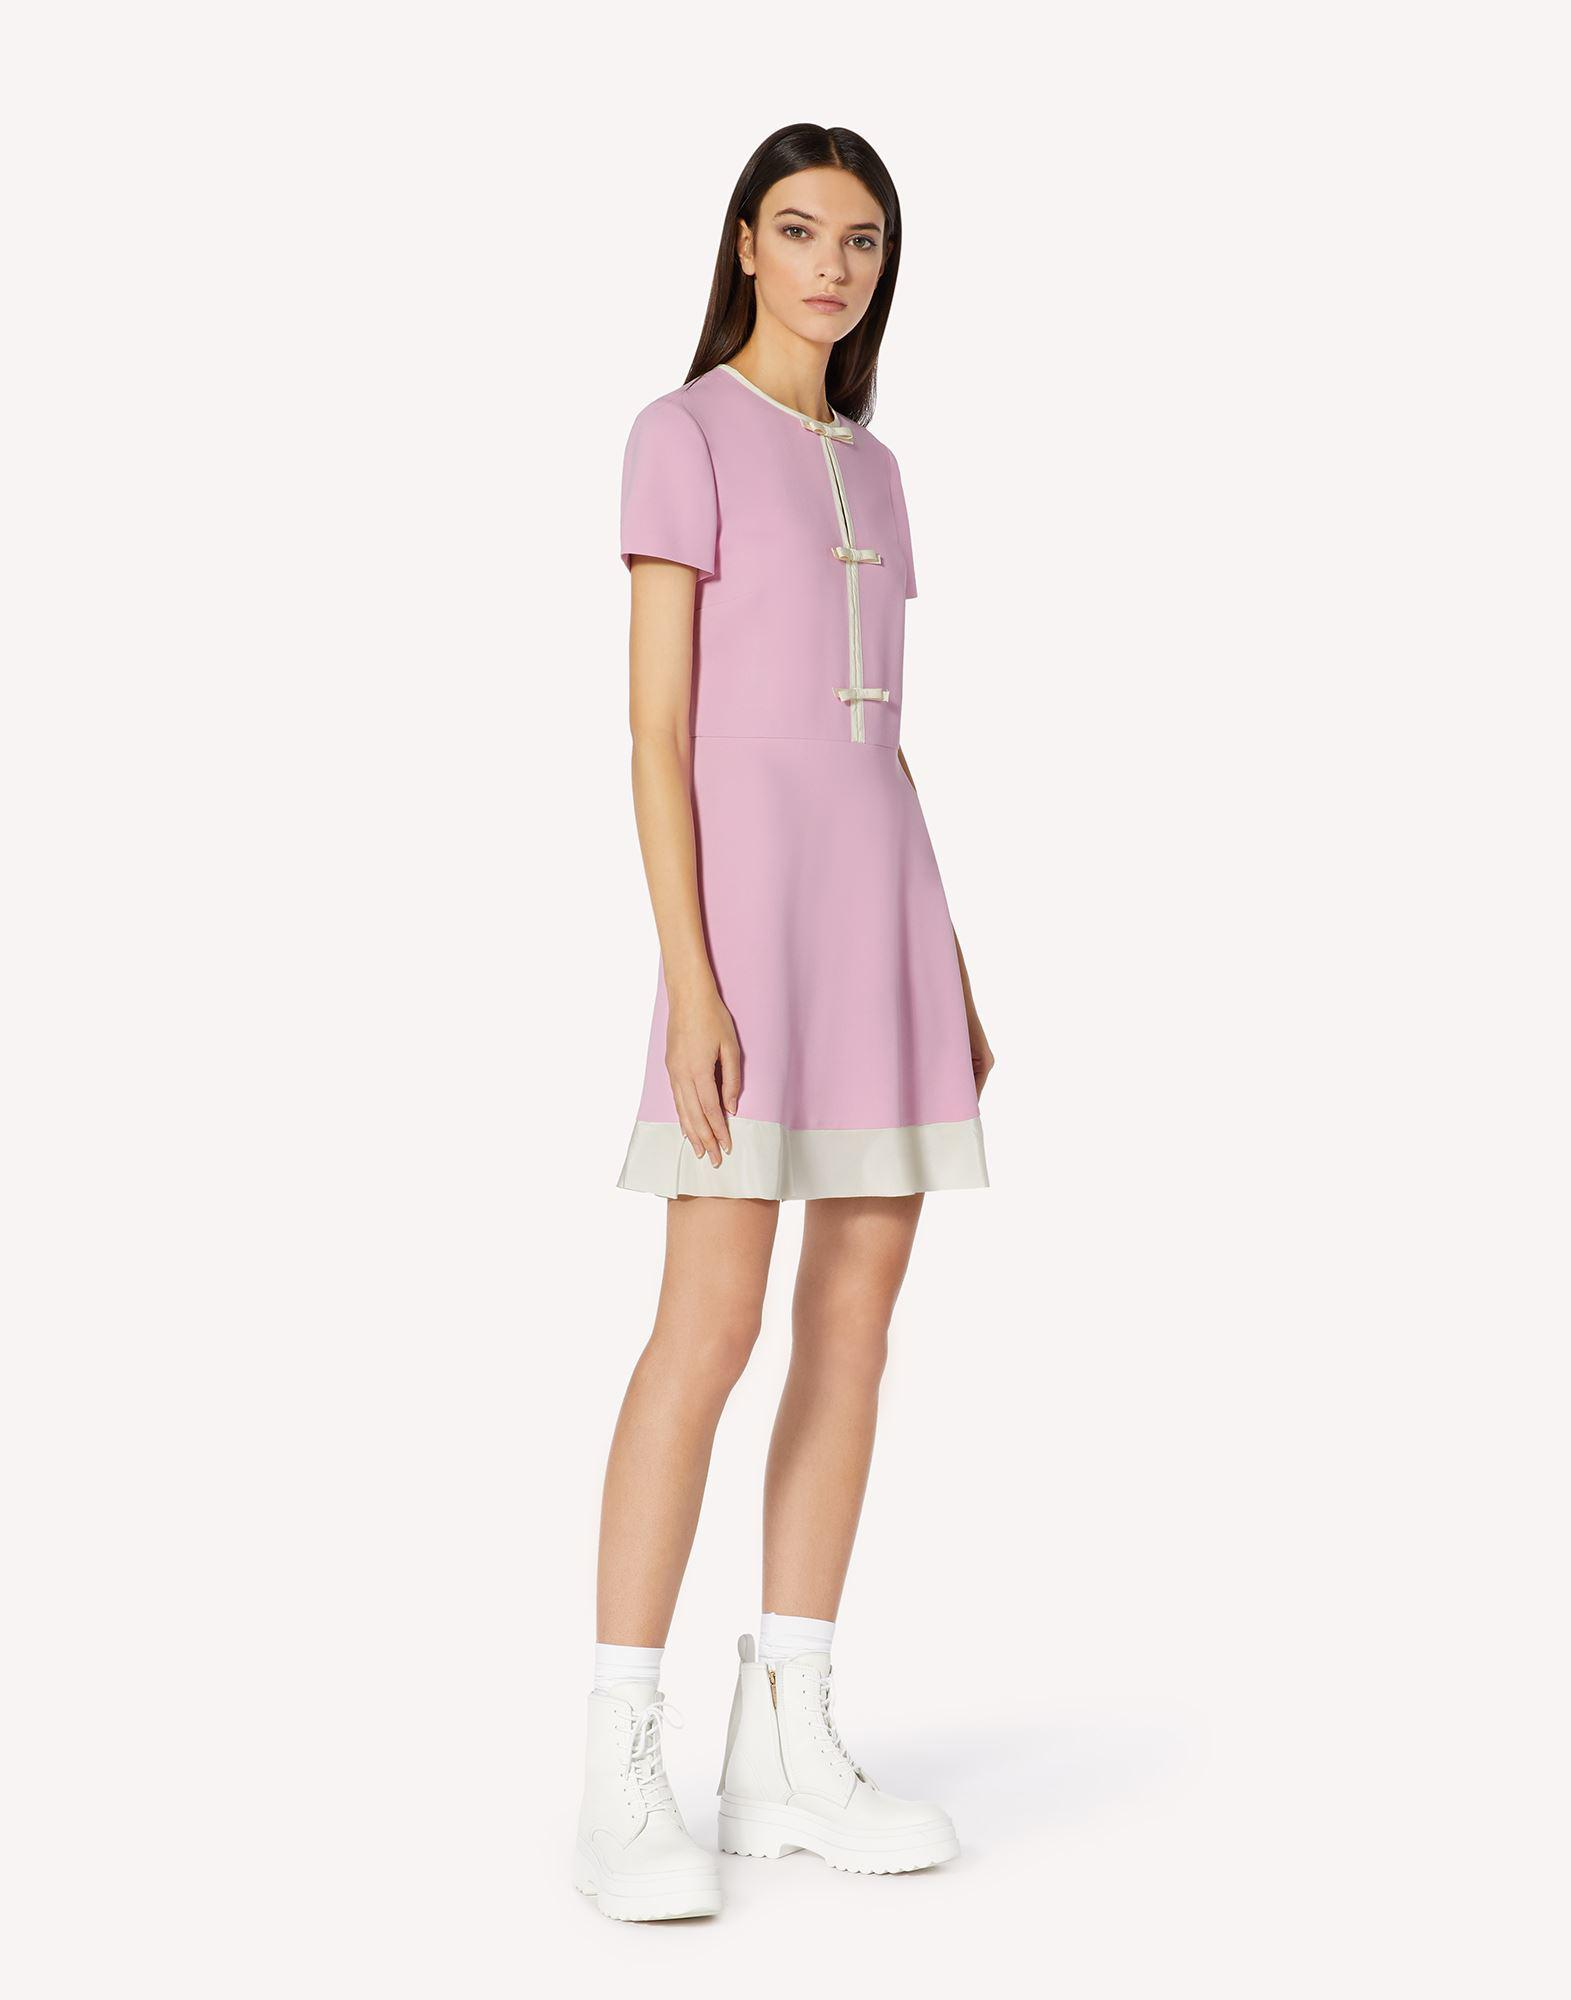 STRETCH FRISOTTINE DRESS WITH BOW DETAILS 2